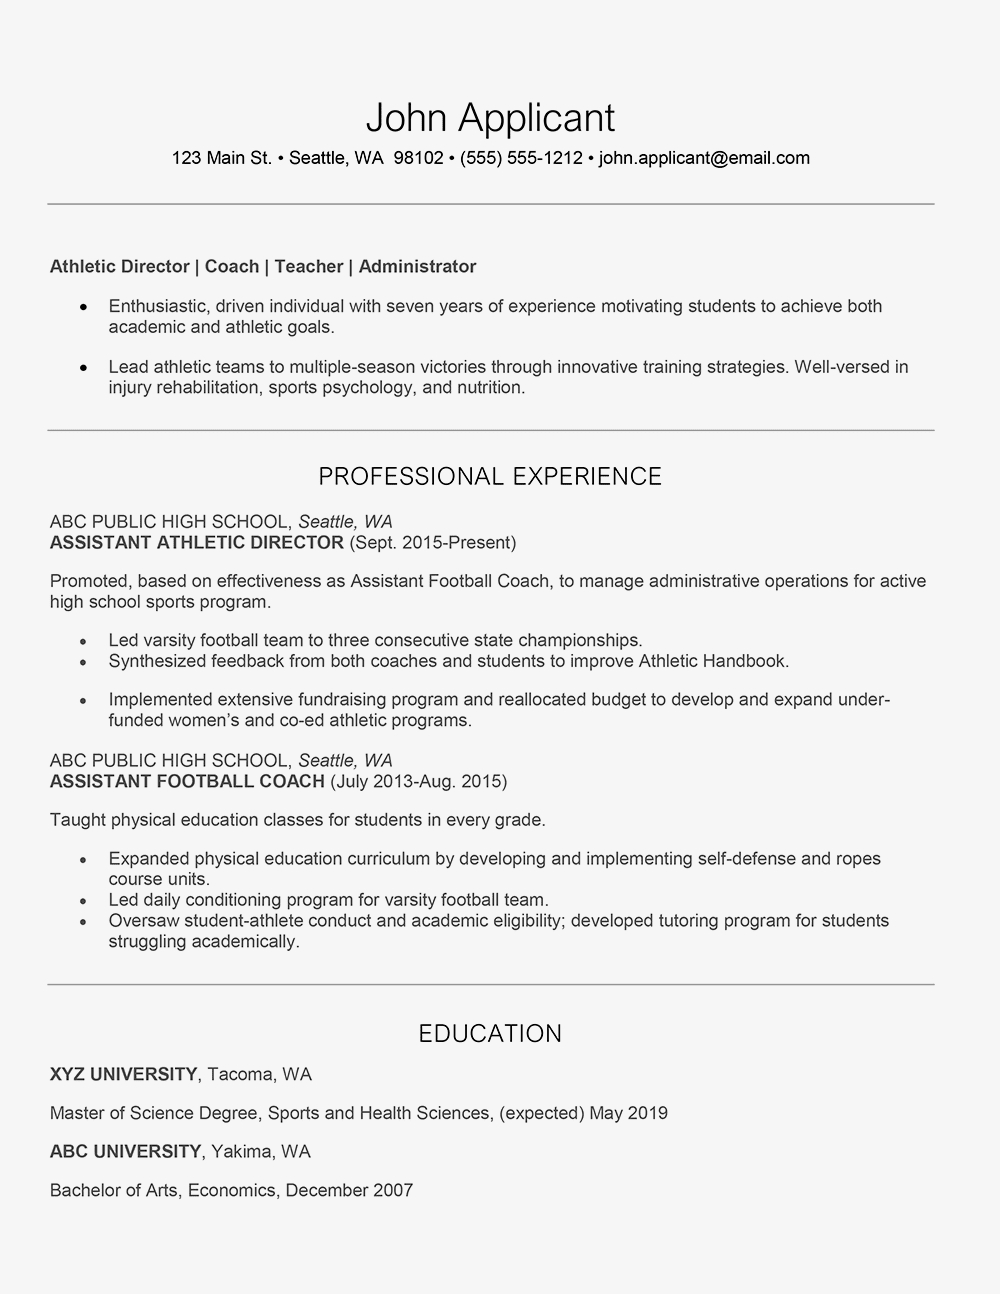 College athletic Resume Template - athletic Director Cover Letter and Resume Examples